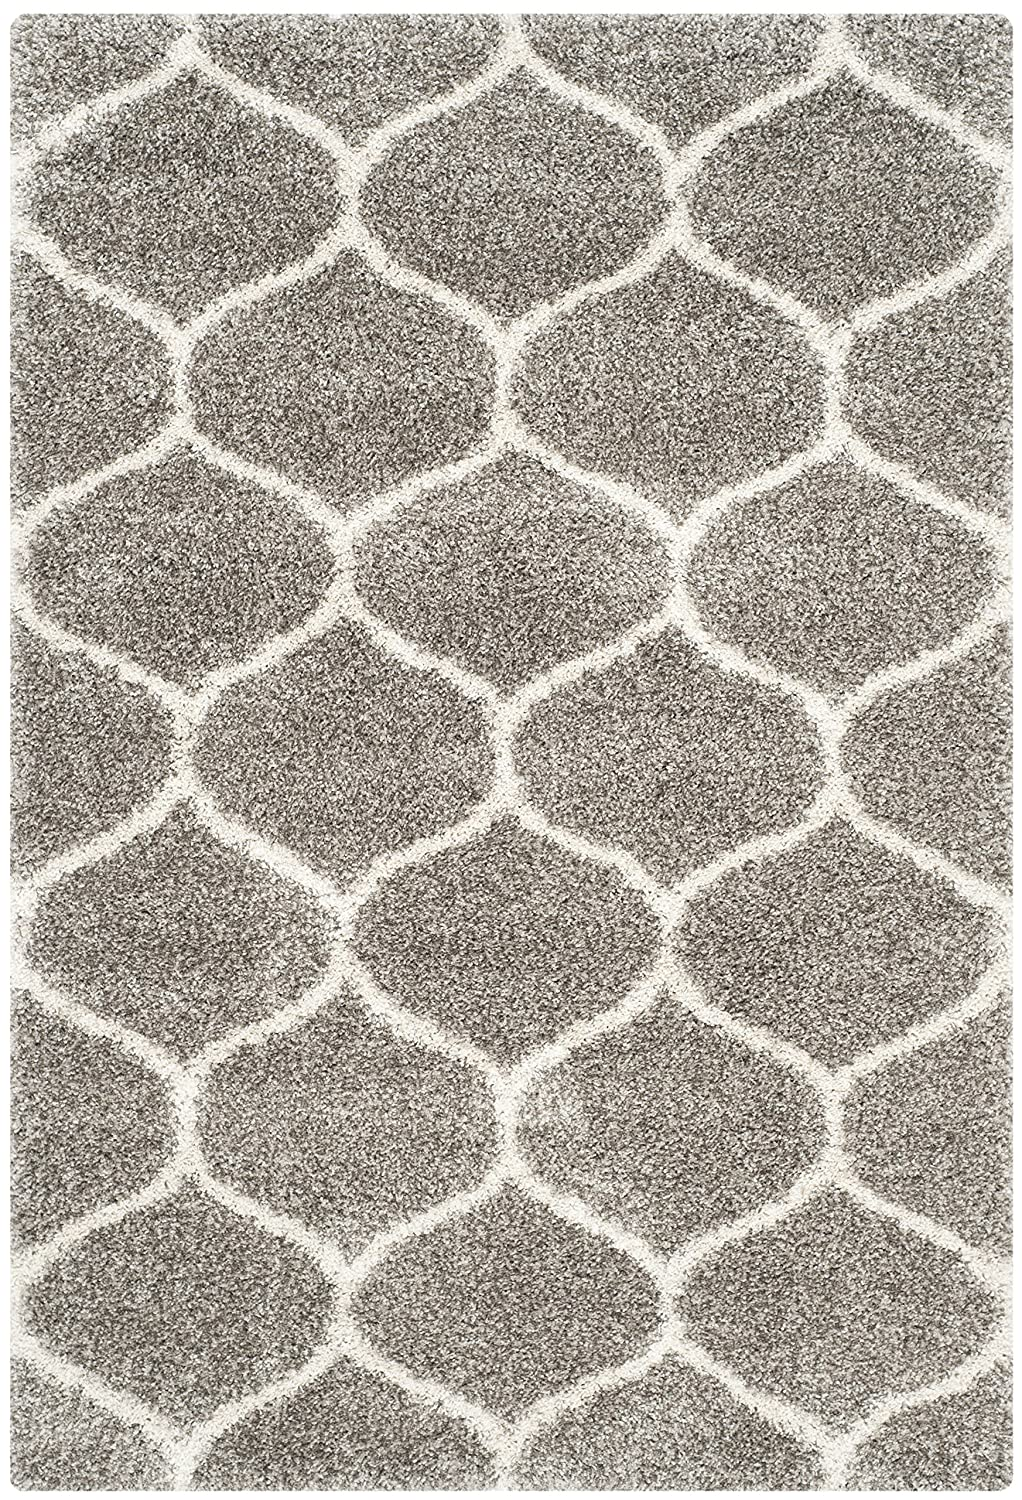 Top 5 Living Room Rugs: Buying Guide & Reviews 5